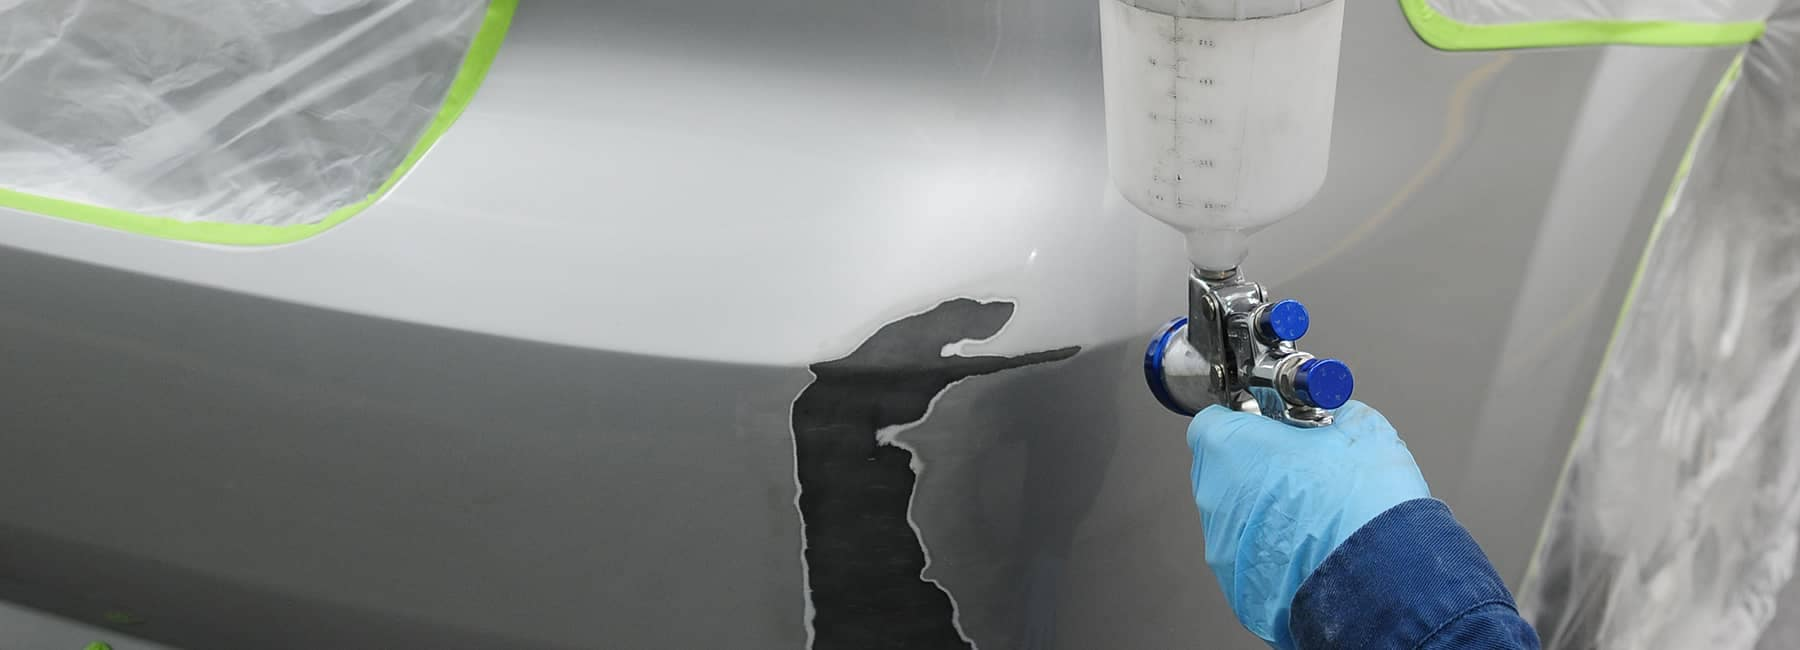 technician gets ready to spray paint on car body repair